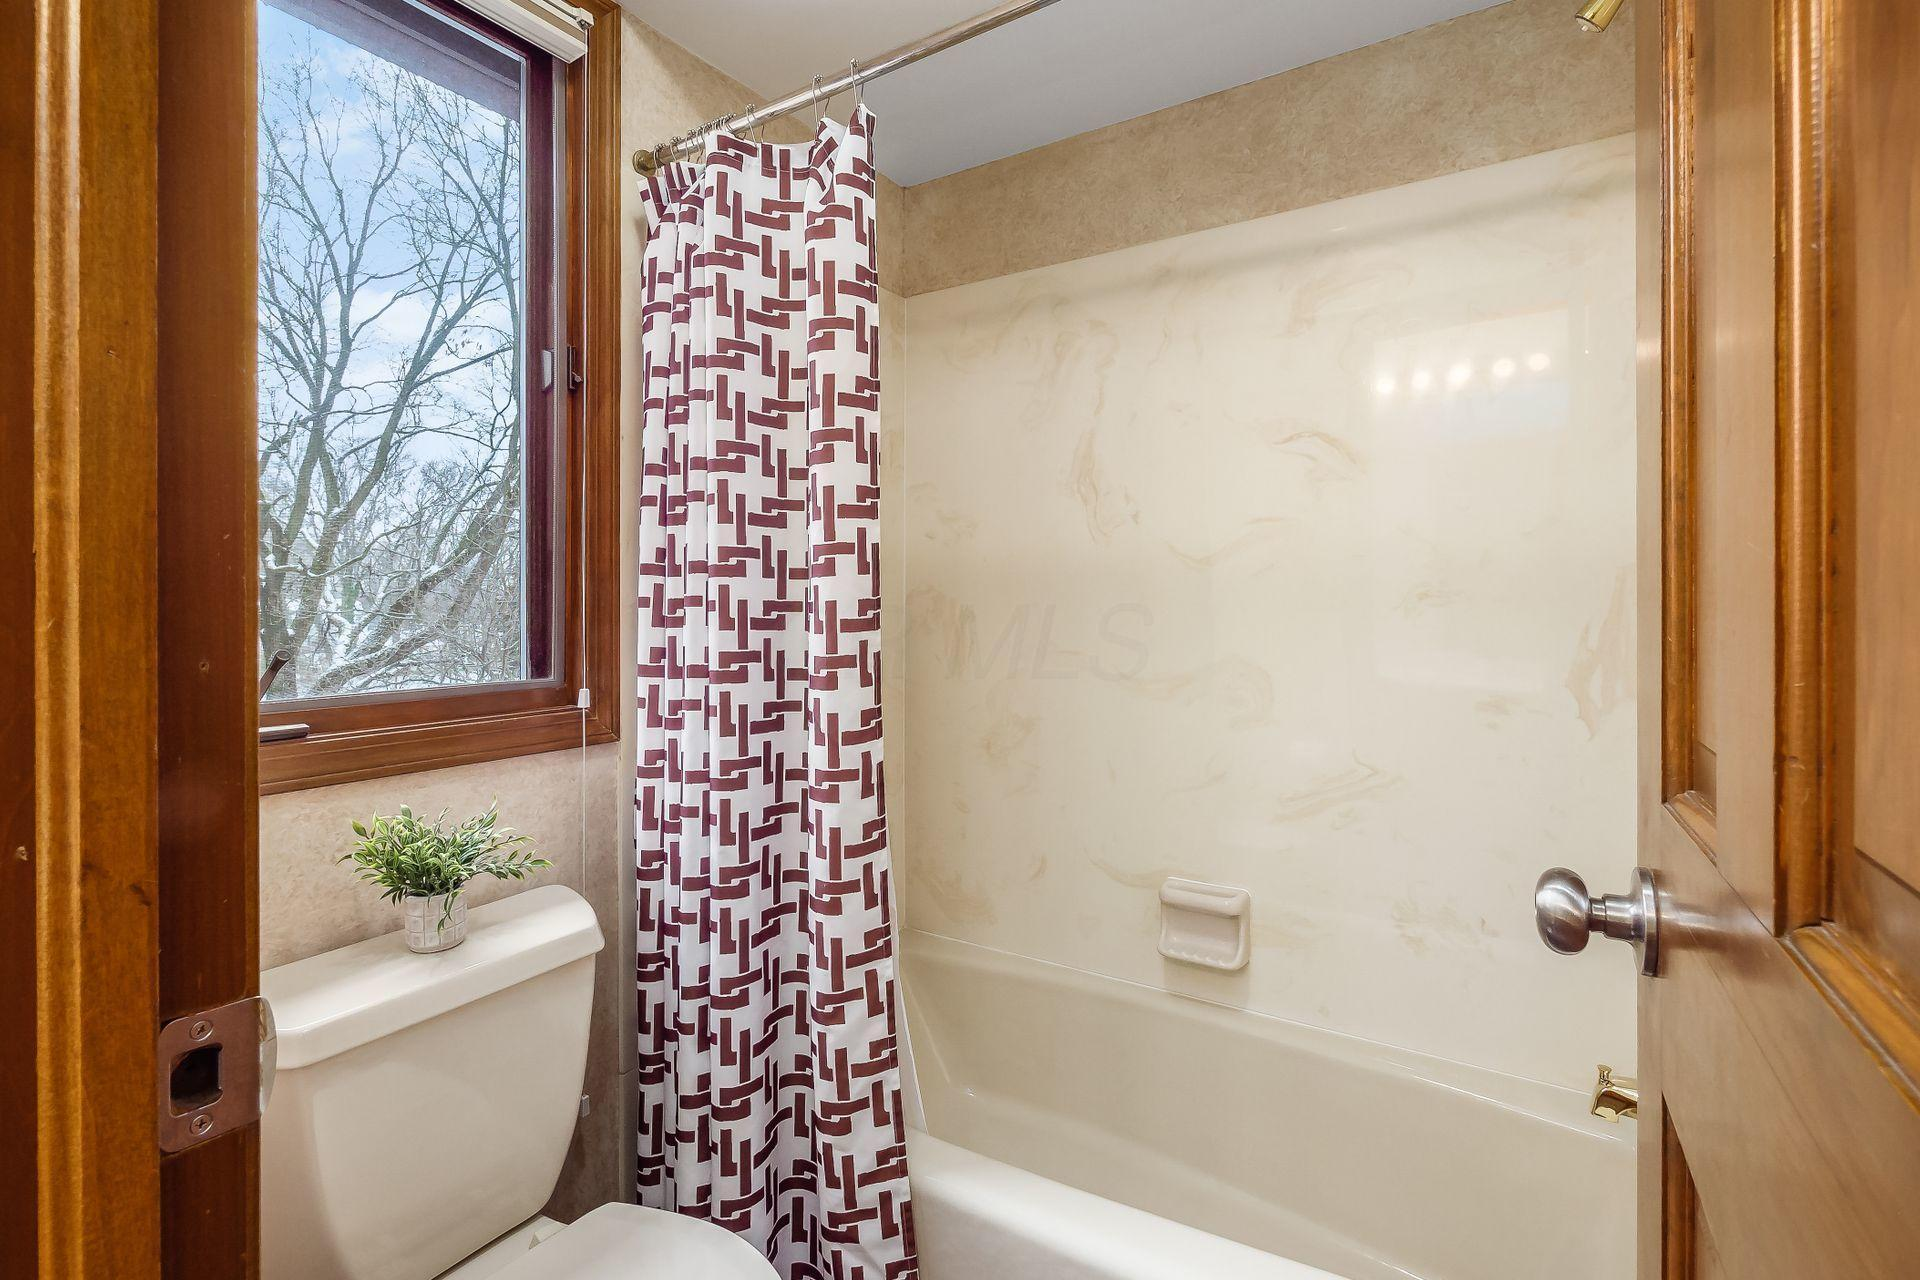 1200 Brittany Lane, Columbus, Ohio 43220, 5 Bedrooms Bedrooms, ,5 BathroomsBathrooms,Residential,For Sale,Brittany,220043612